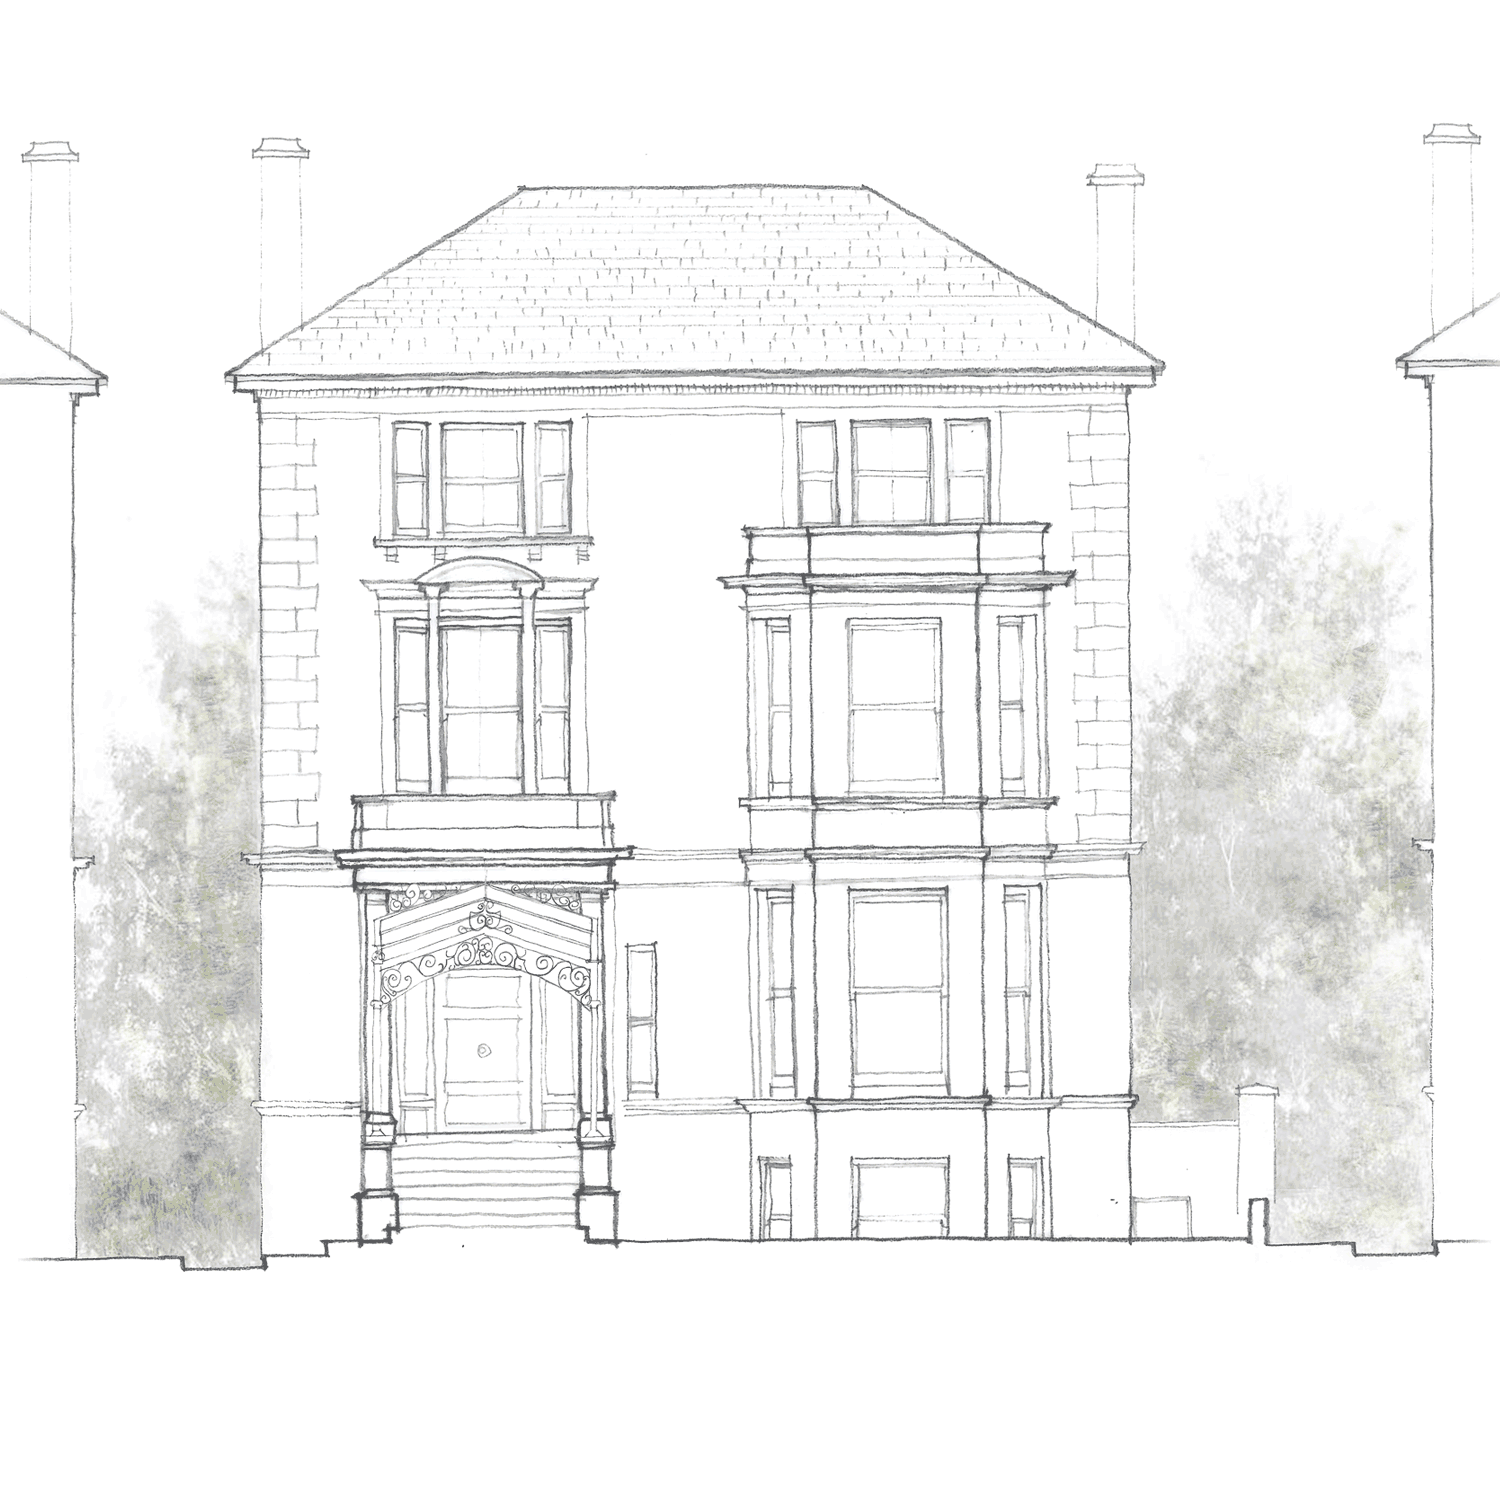 Phillimores sketch showing the front elevation